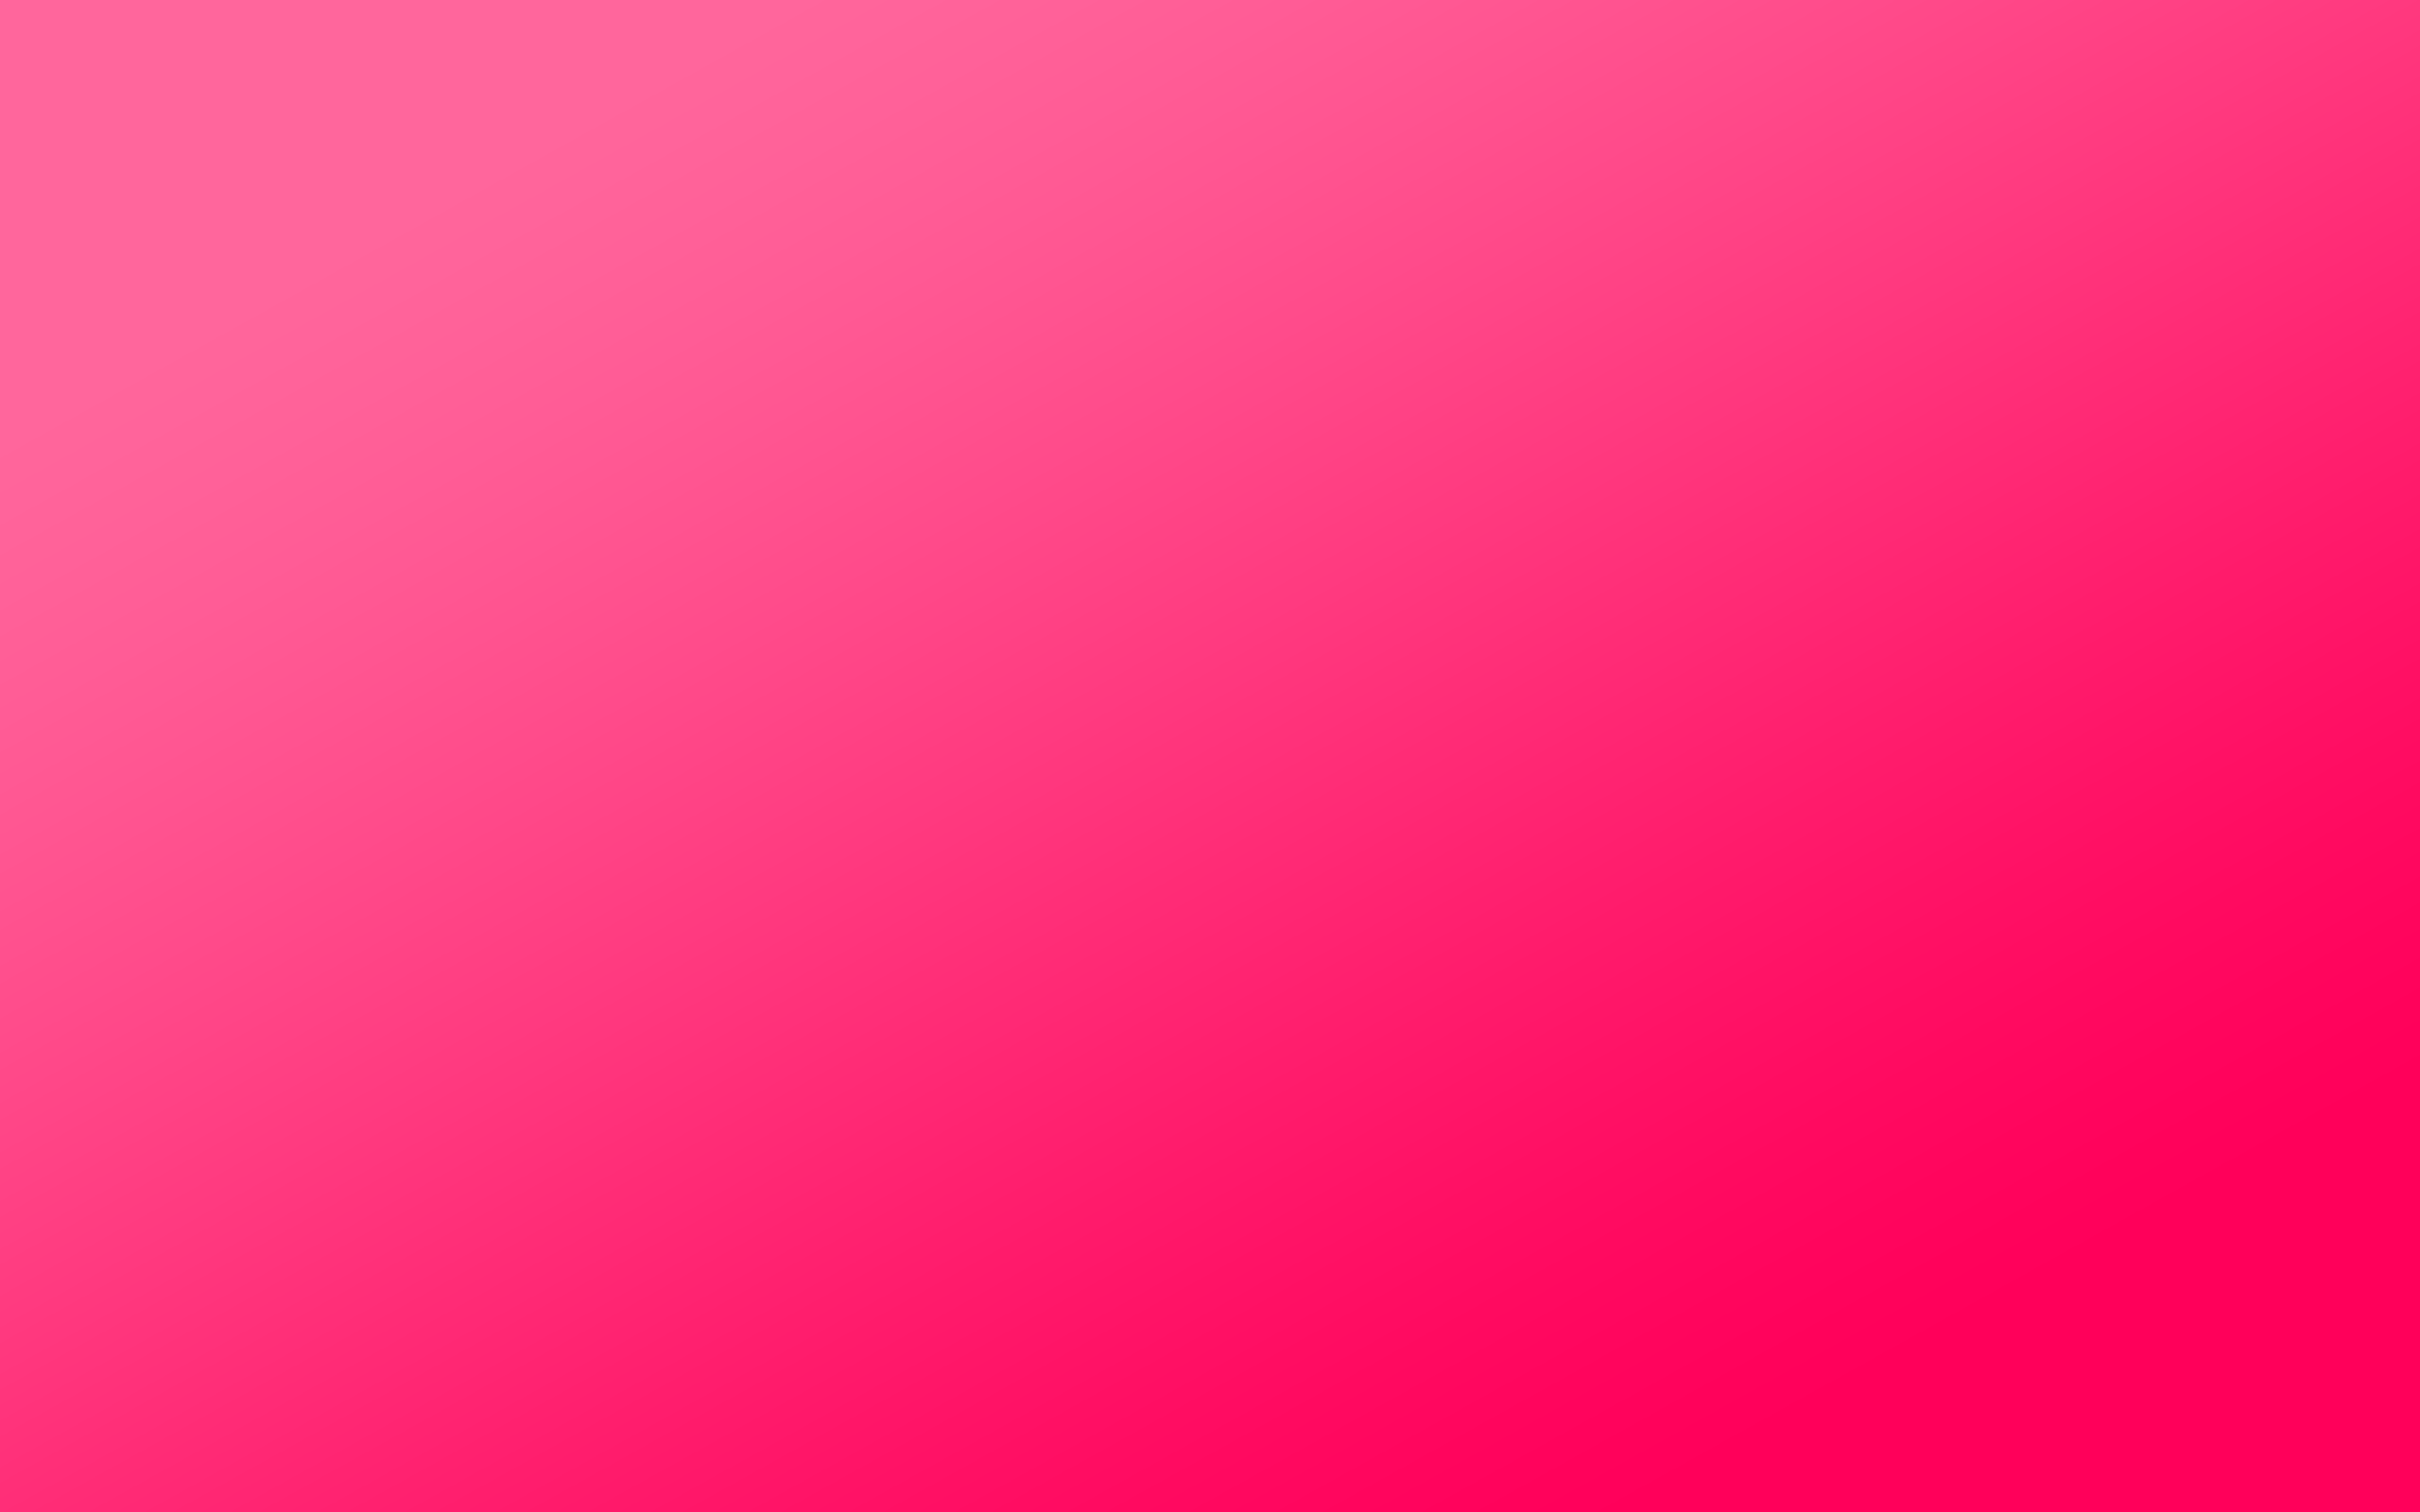 Pink HD Wallpapers - Wallpaper Cave